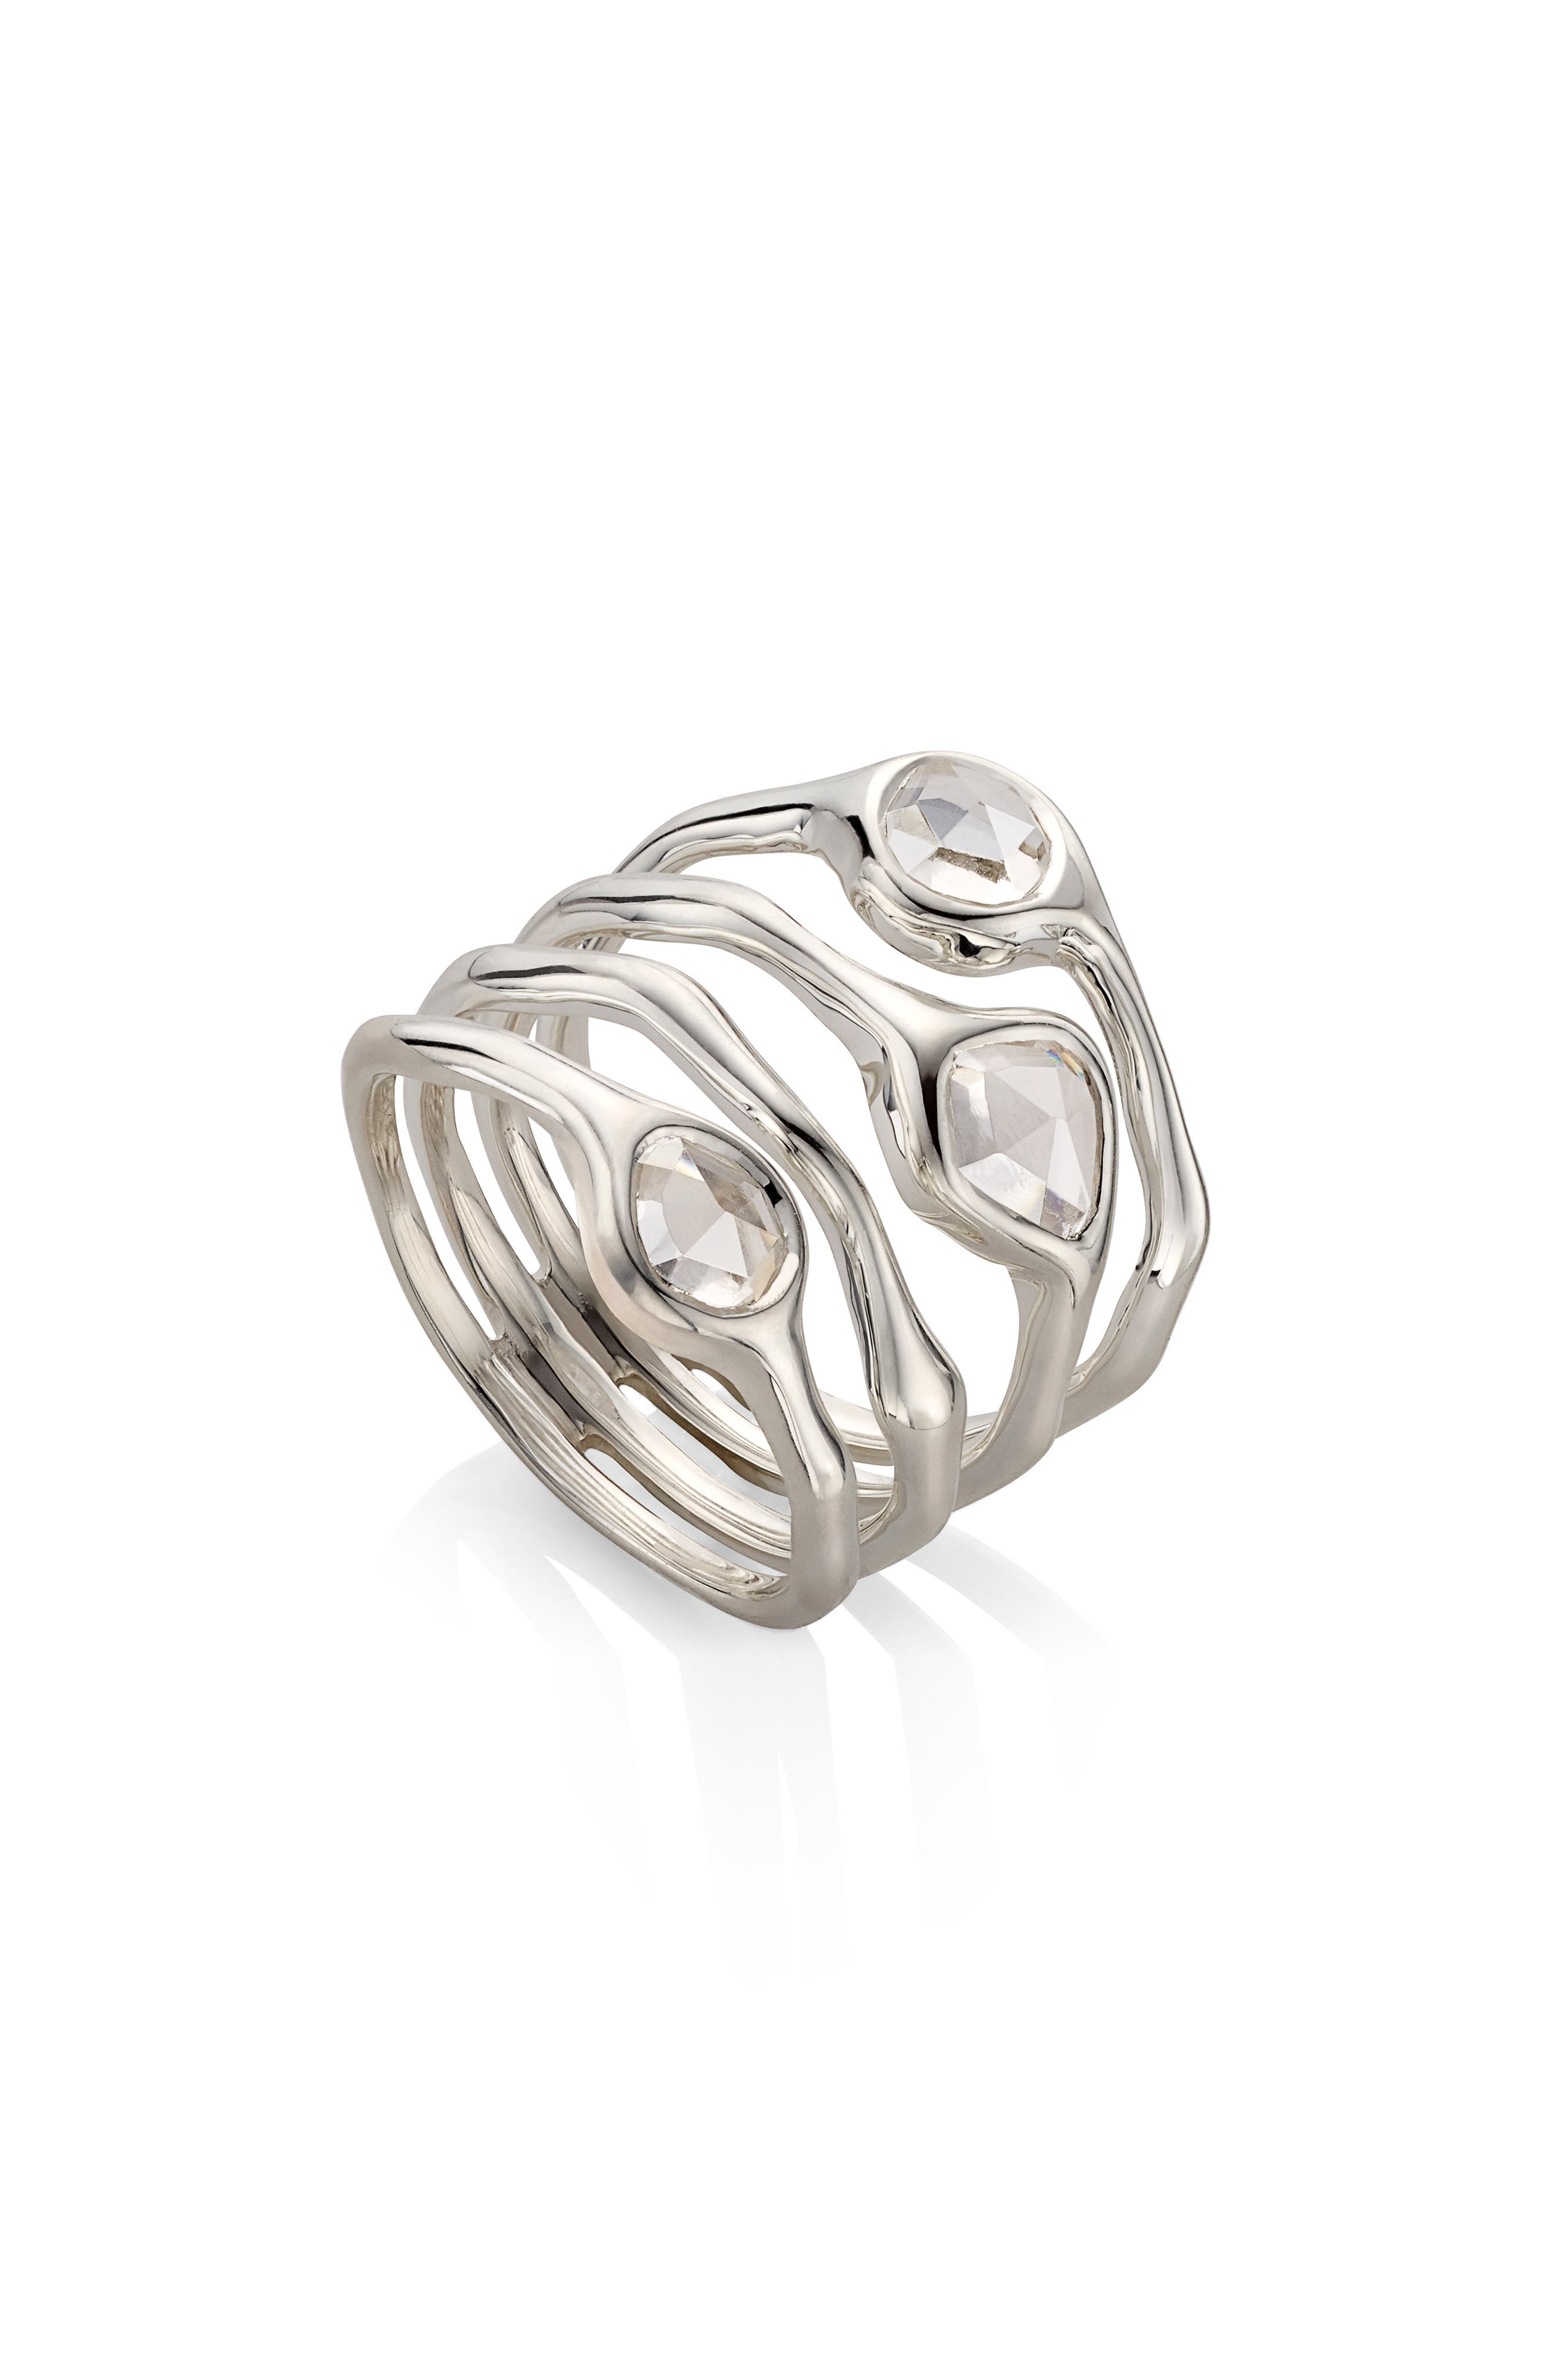 Siren Cluster Cocktail Ring,                             Main thumbnail 1, color,                             SILVER/ ROCK CRYSTAL